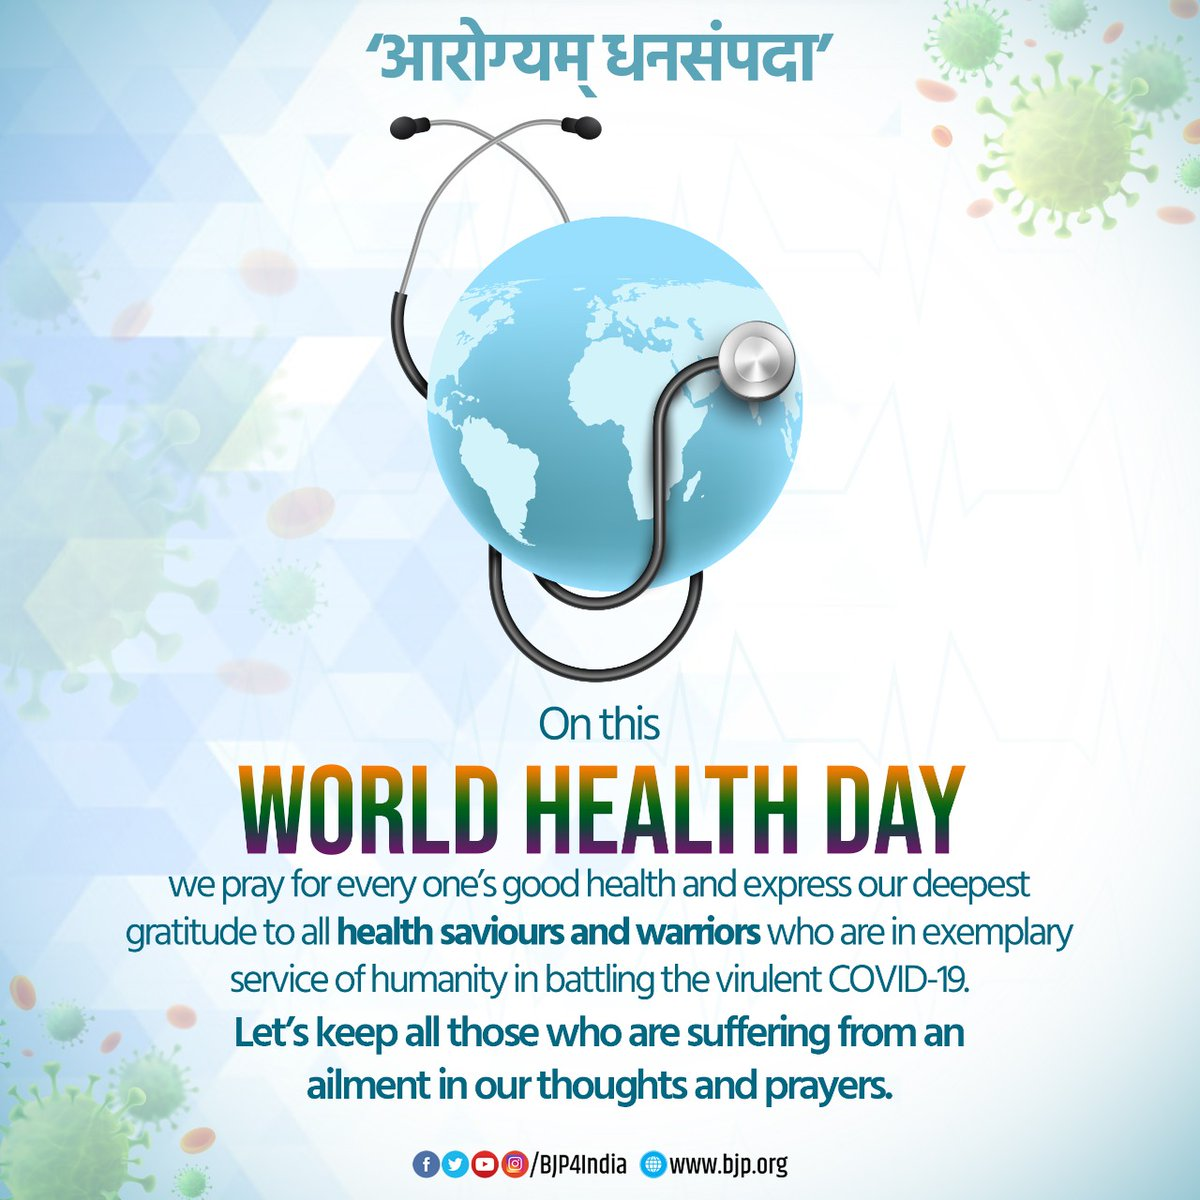 #happy world health day pic.twitter.com/IWTZKkmTYd